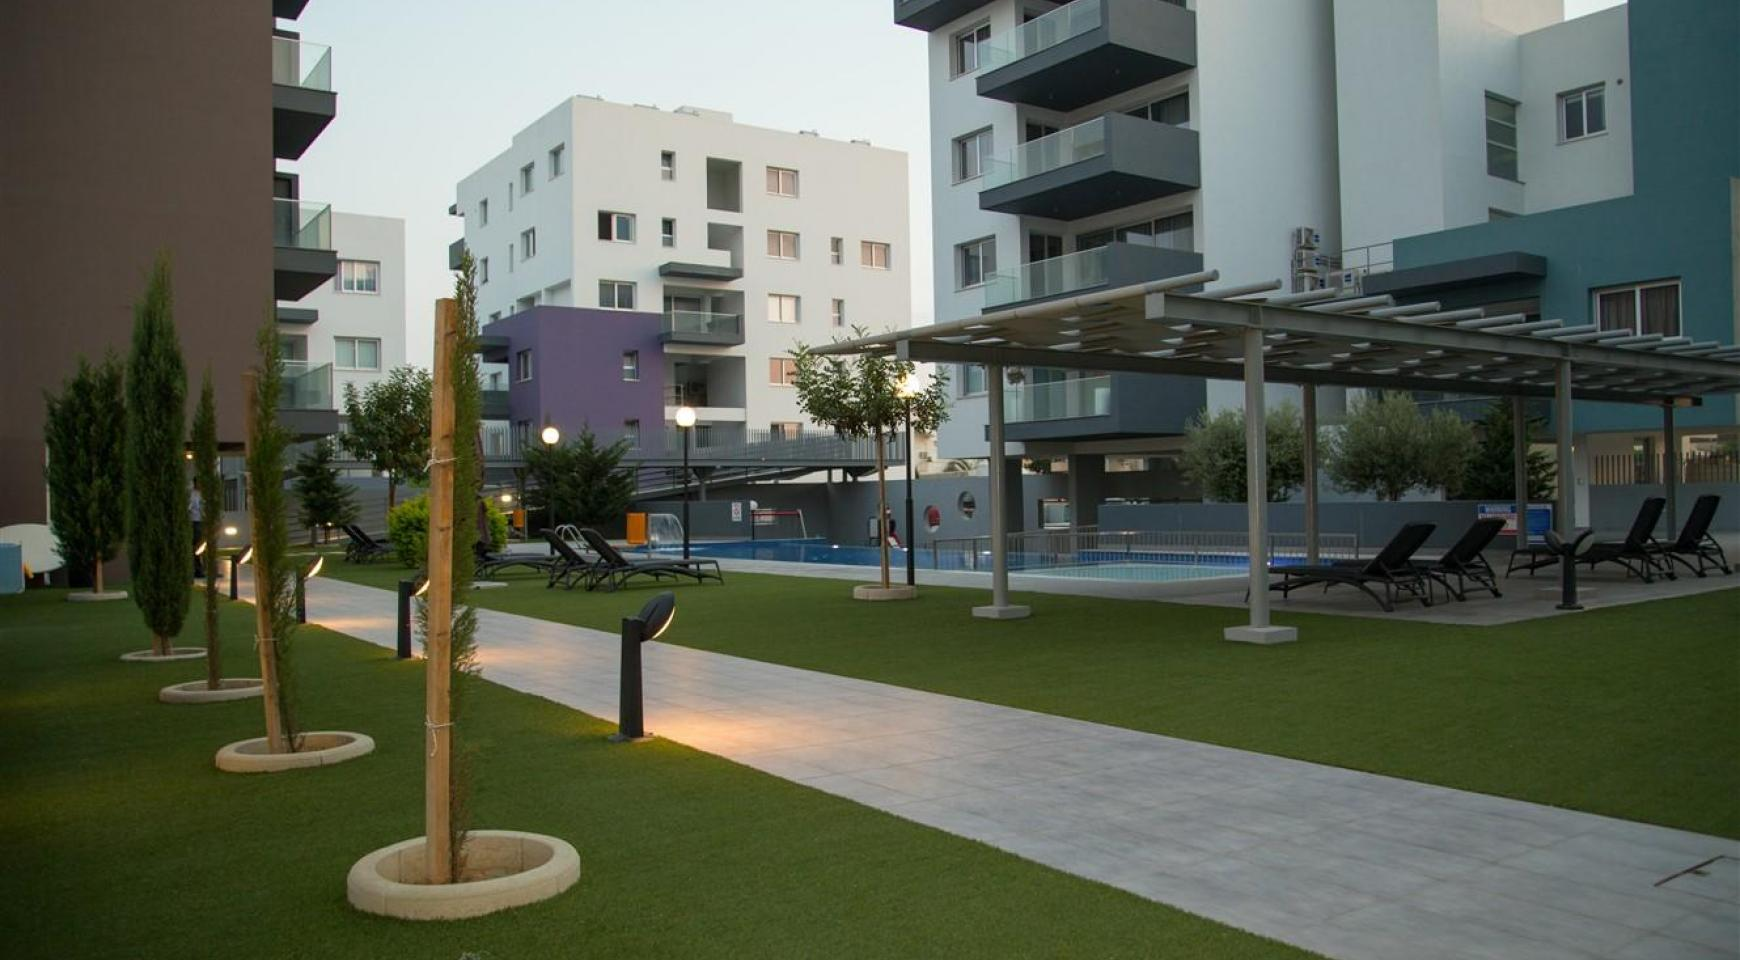 Elite 3 Bedroom Penthouse with private Swimming Pool on the Roof - 5